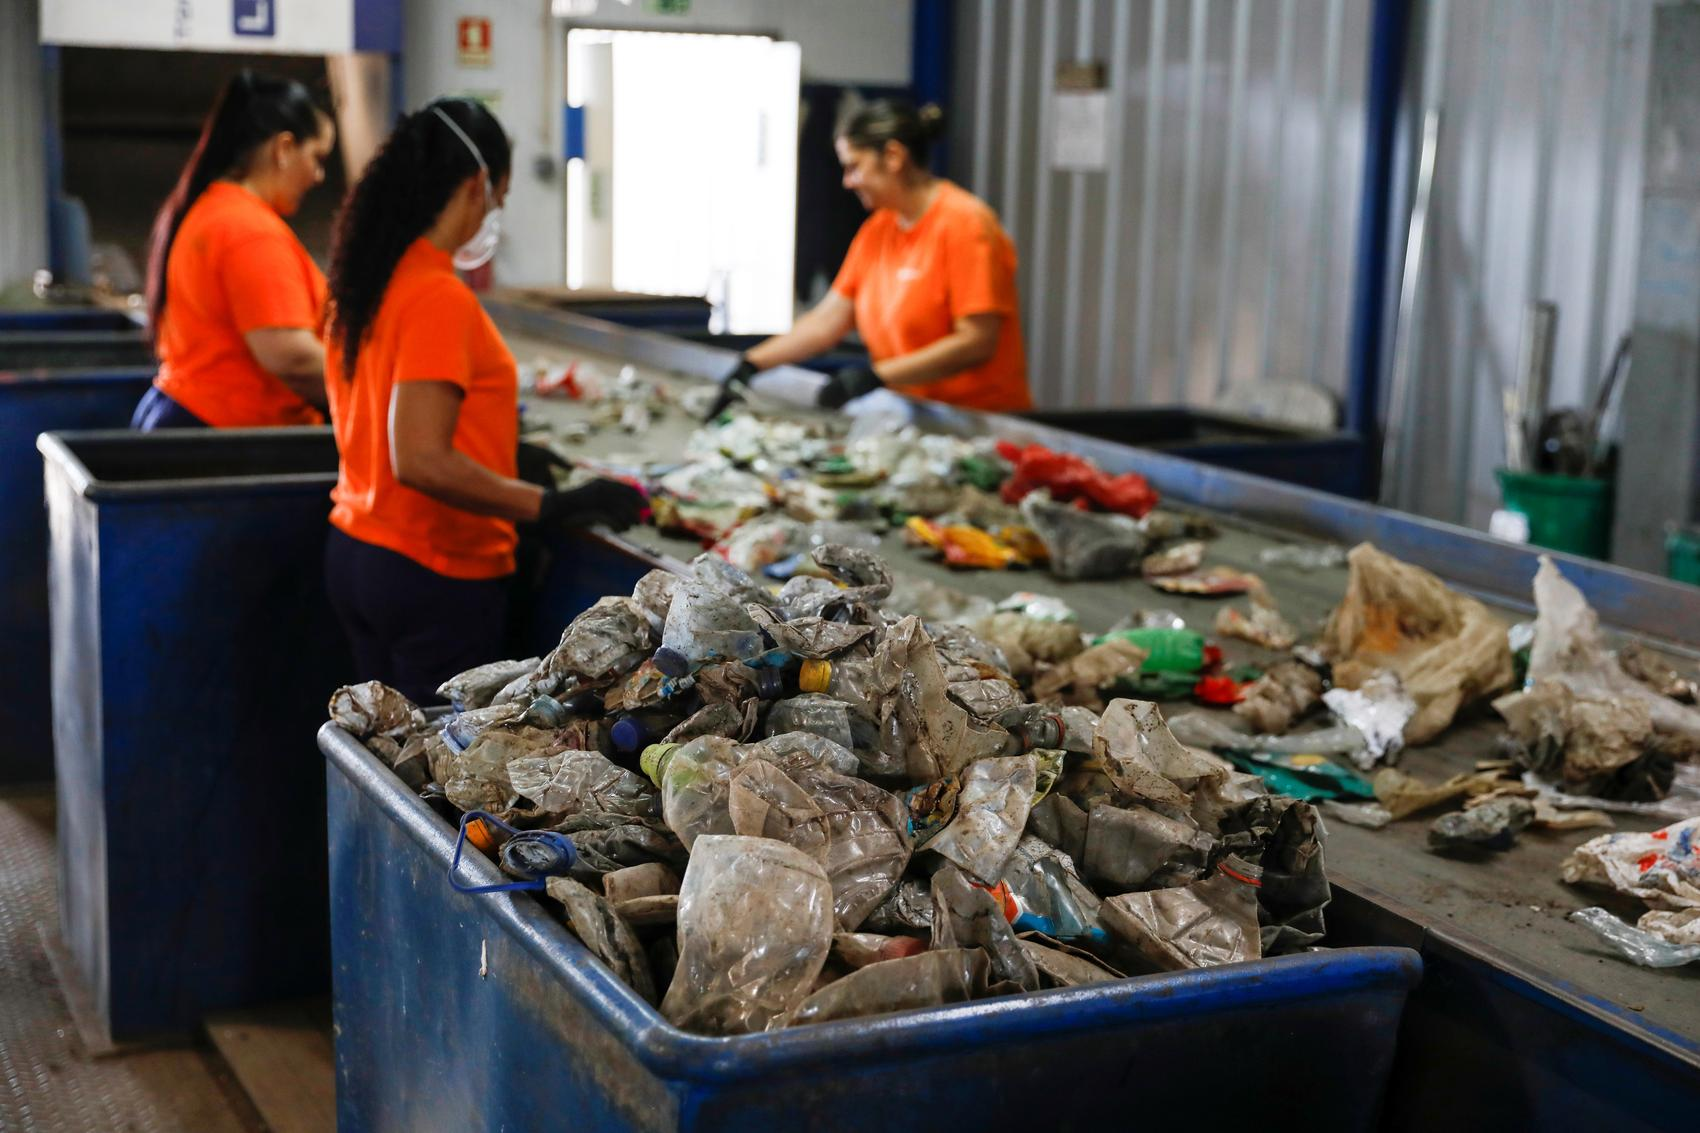 Special Report: Plastic pandemic - COVID-19 trashed the recycling dream